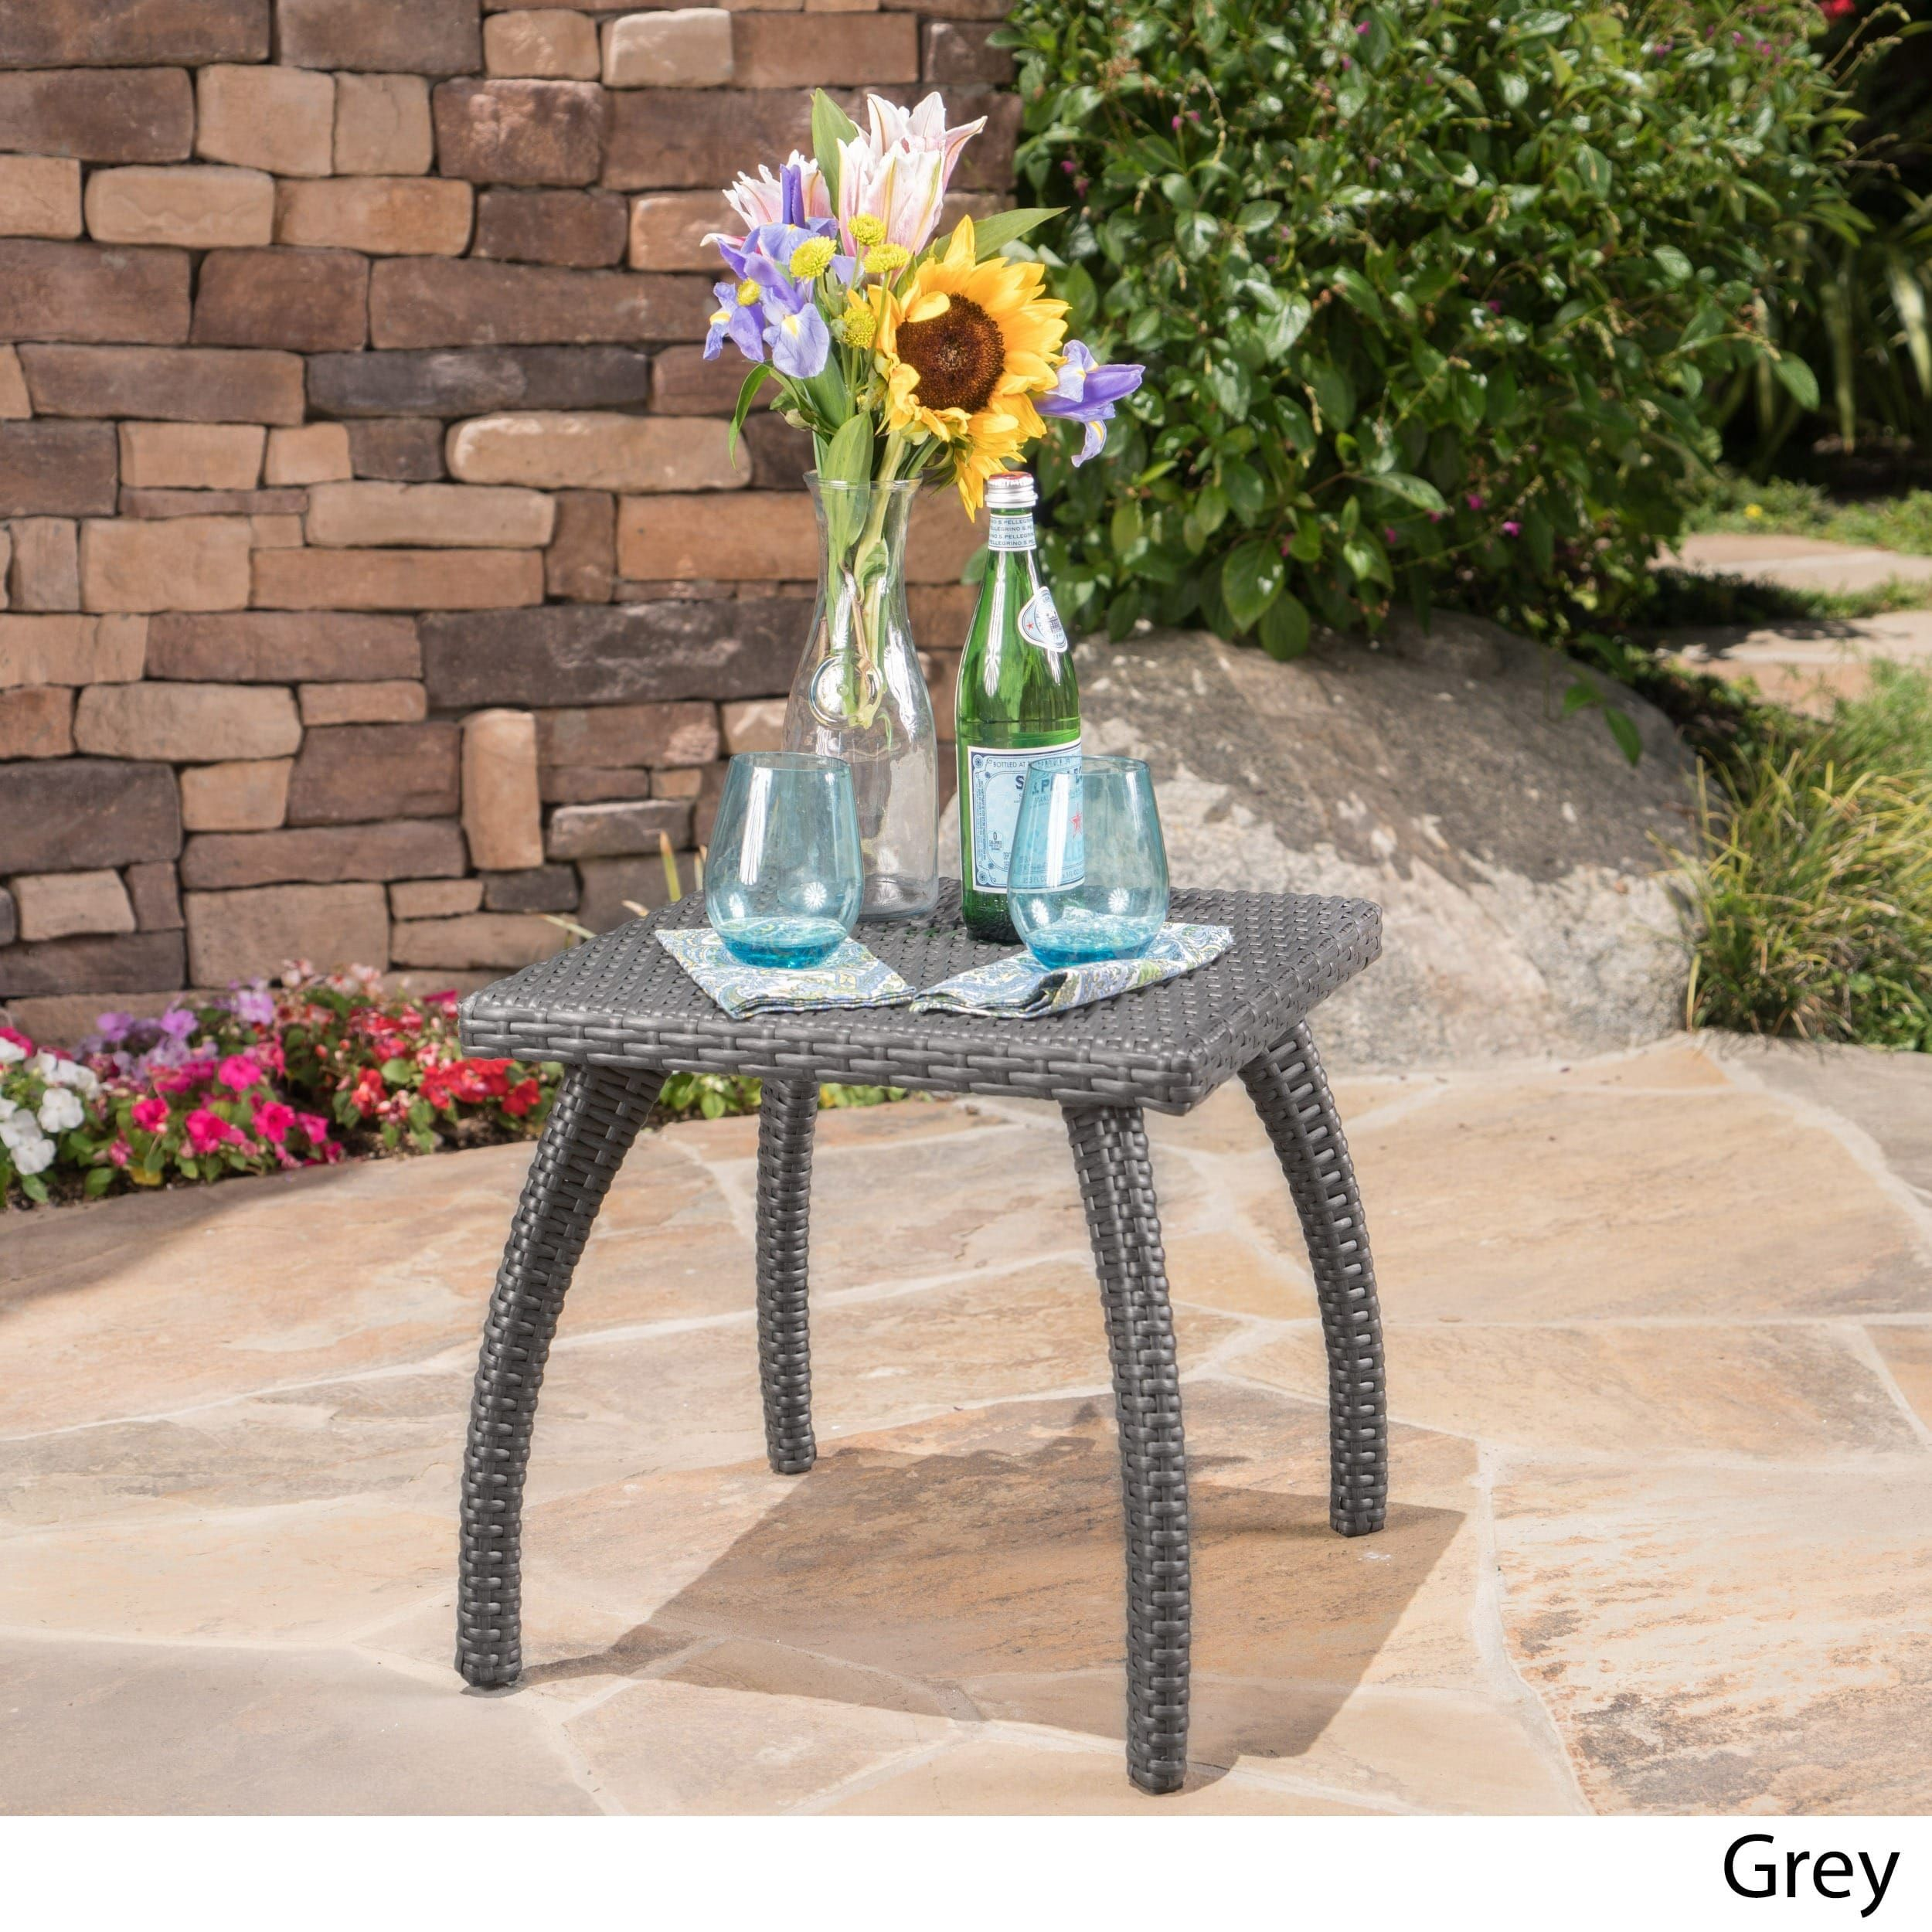 Honolulu Outdoor Wicker Side Table By Christopher Knight Home Grey - All weather wicker side table